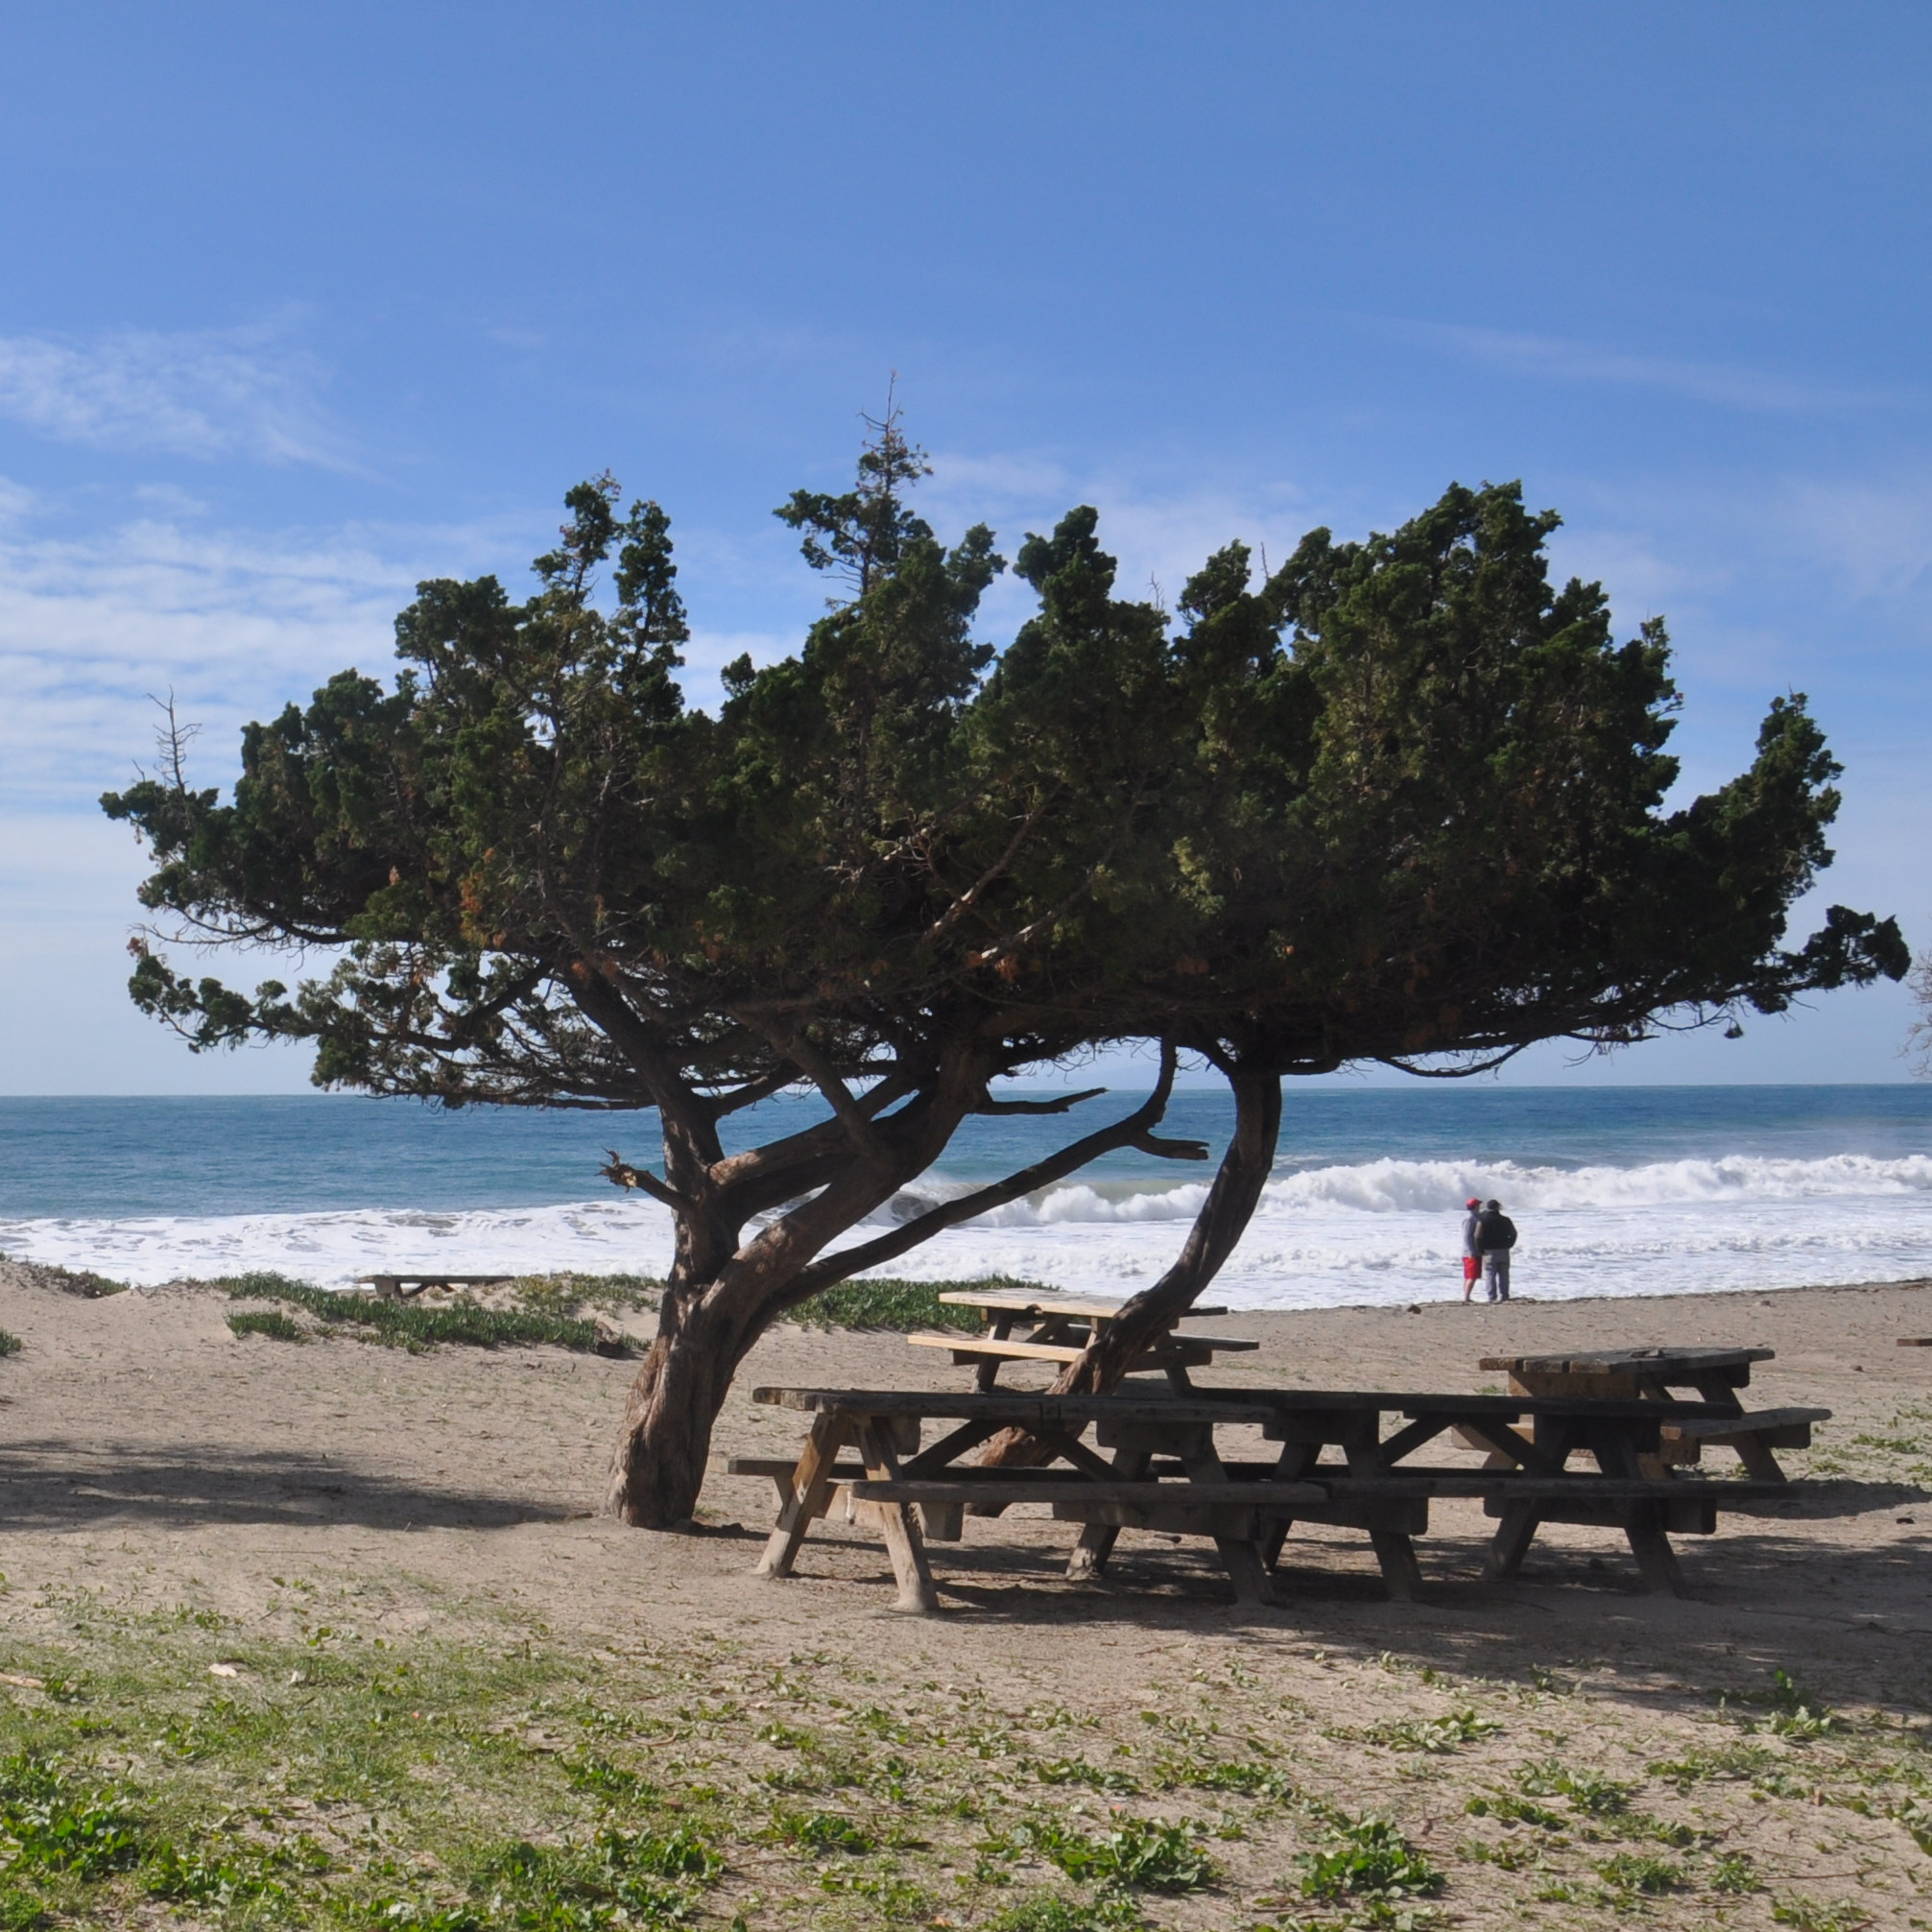 The picnic area at Sycamore Cove Beach on the Pacific Coast Highway just west of Los Angeles.